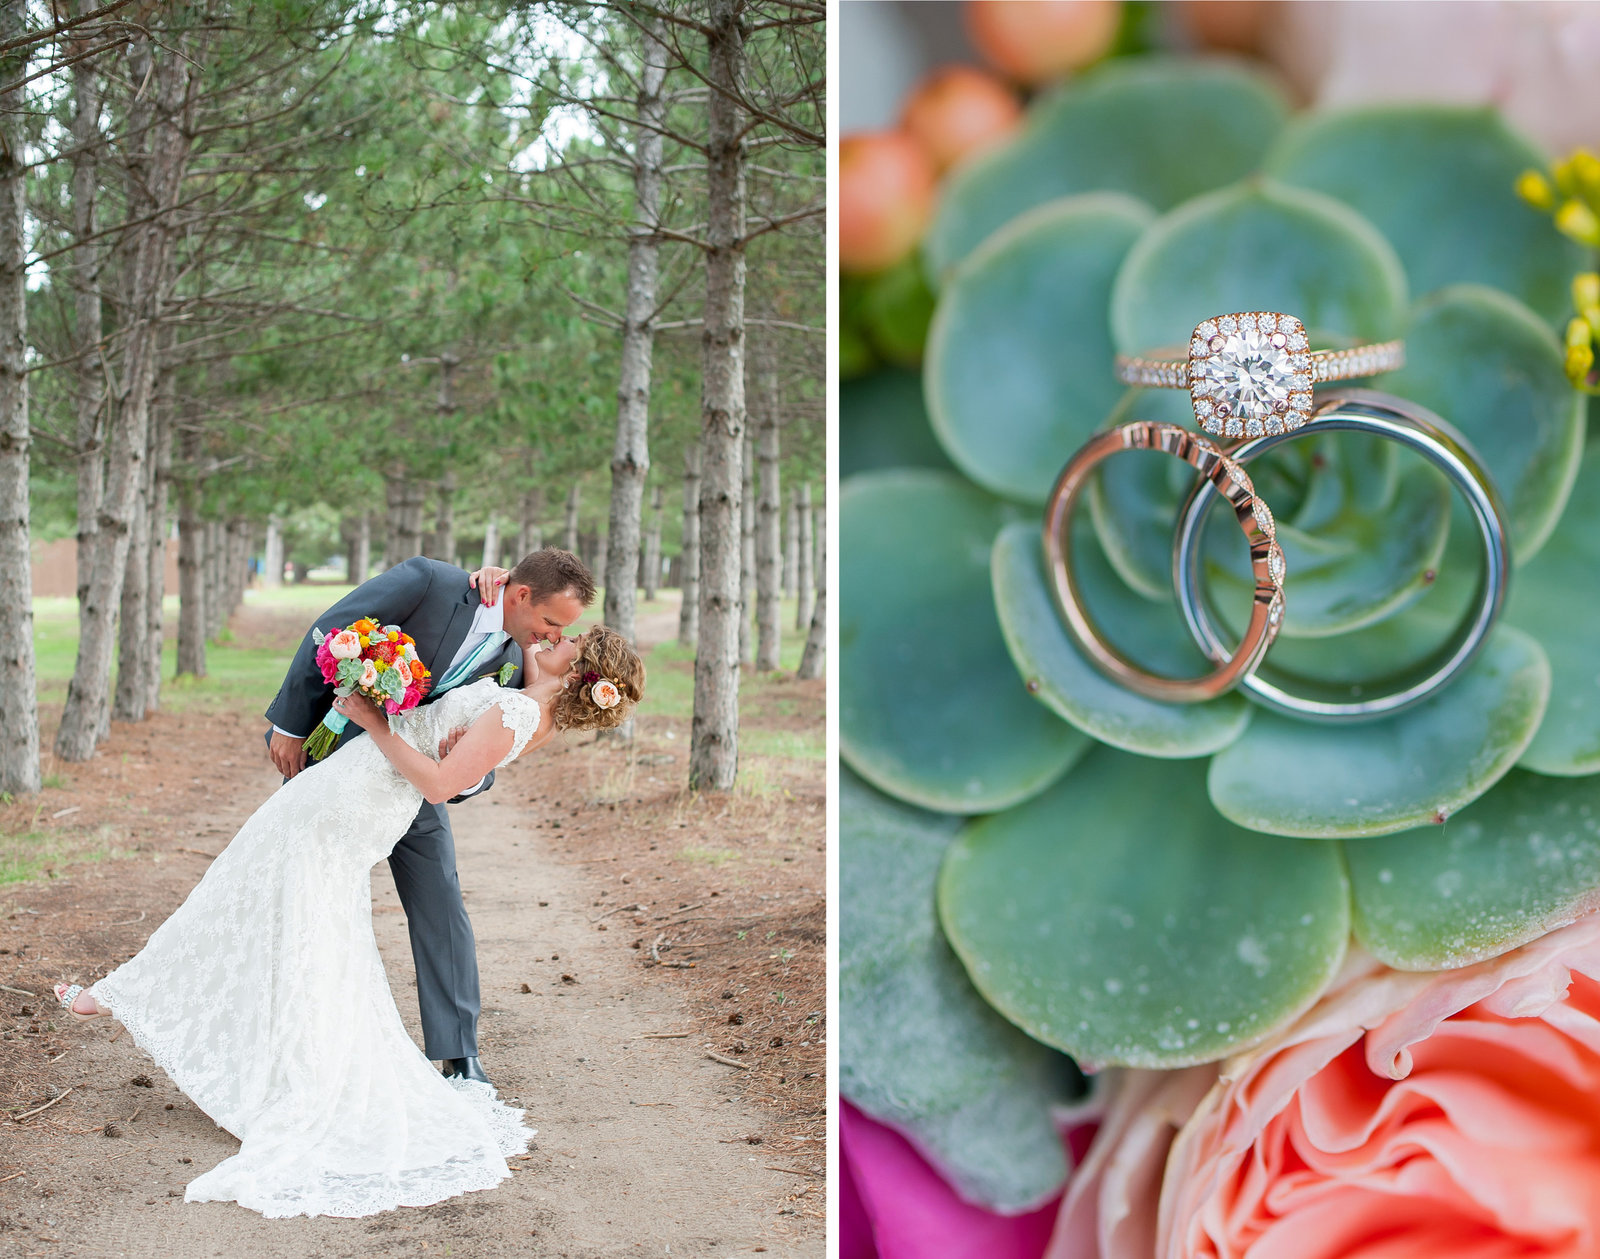 Succulent wedding florals and rose gold rings. Modern weddings photography kris kandel